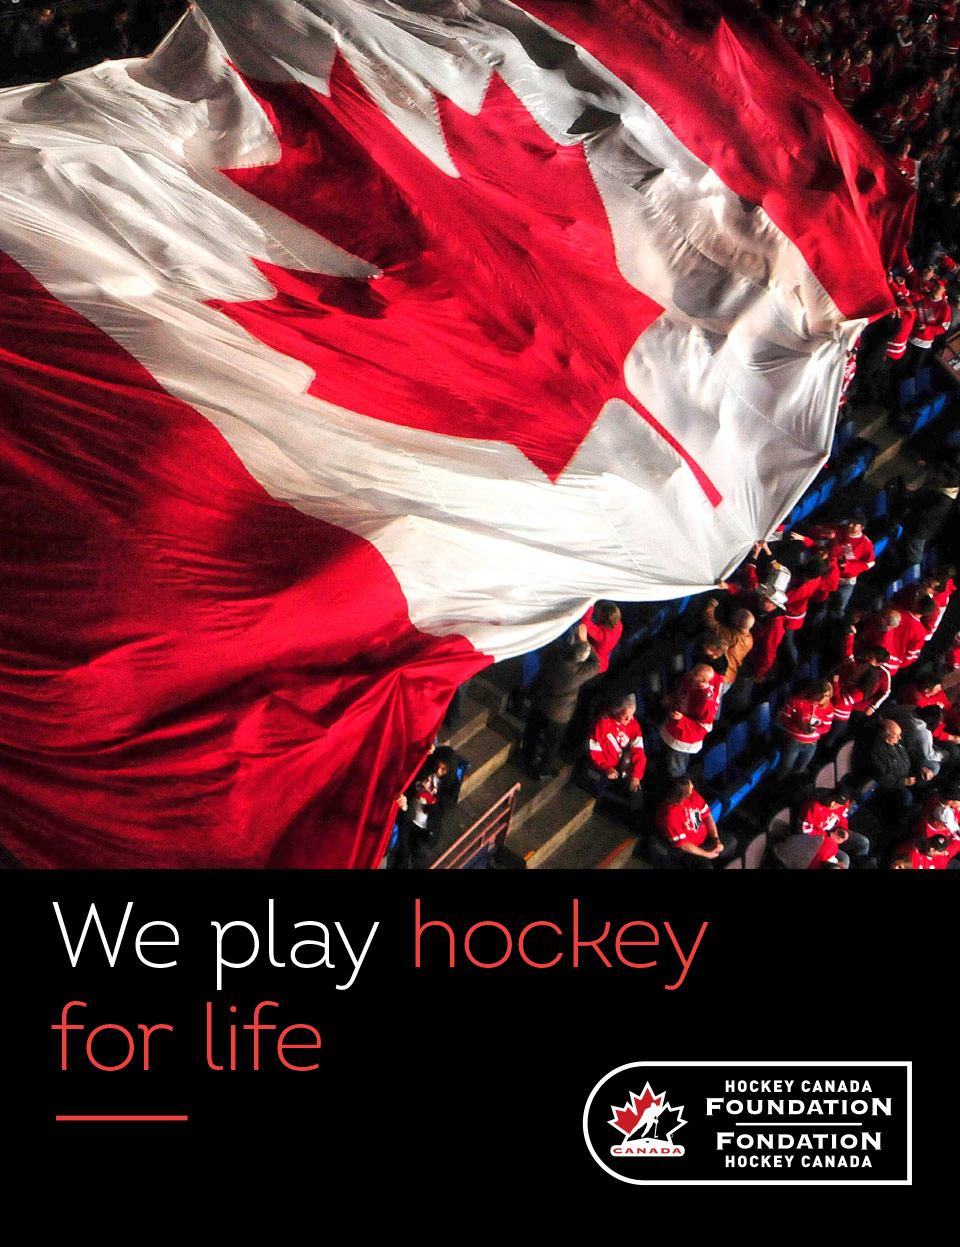 Hockey Canada Foundation case for support